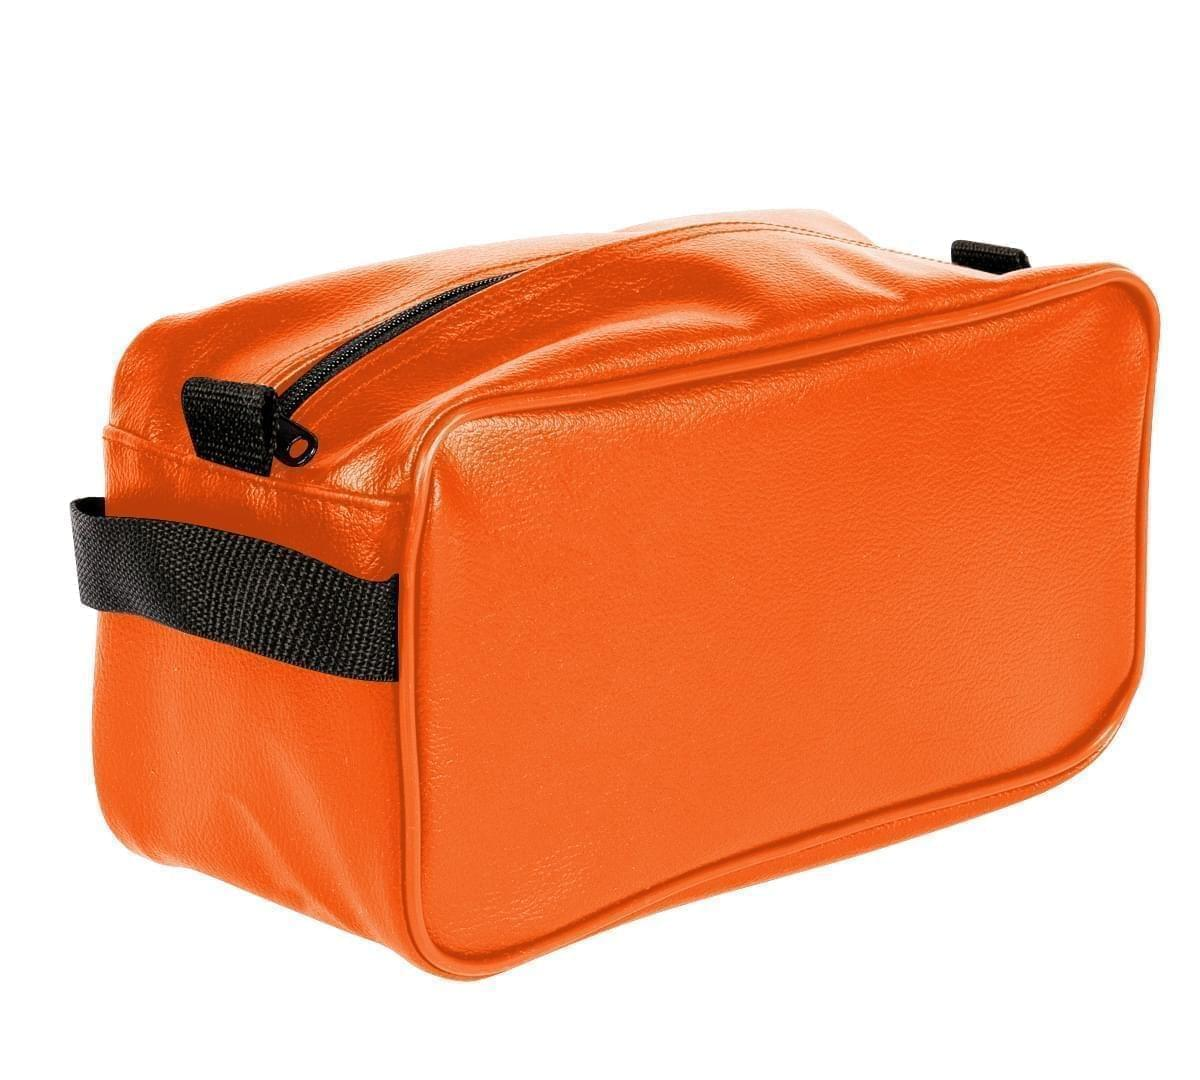 USA Made Cosmetic & Toiletry Cases, Orange-Black, 3000996-AXR